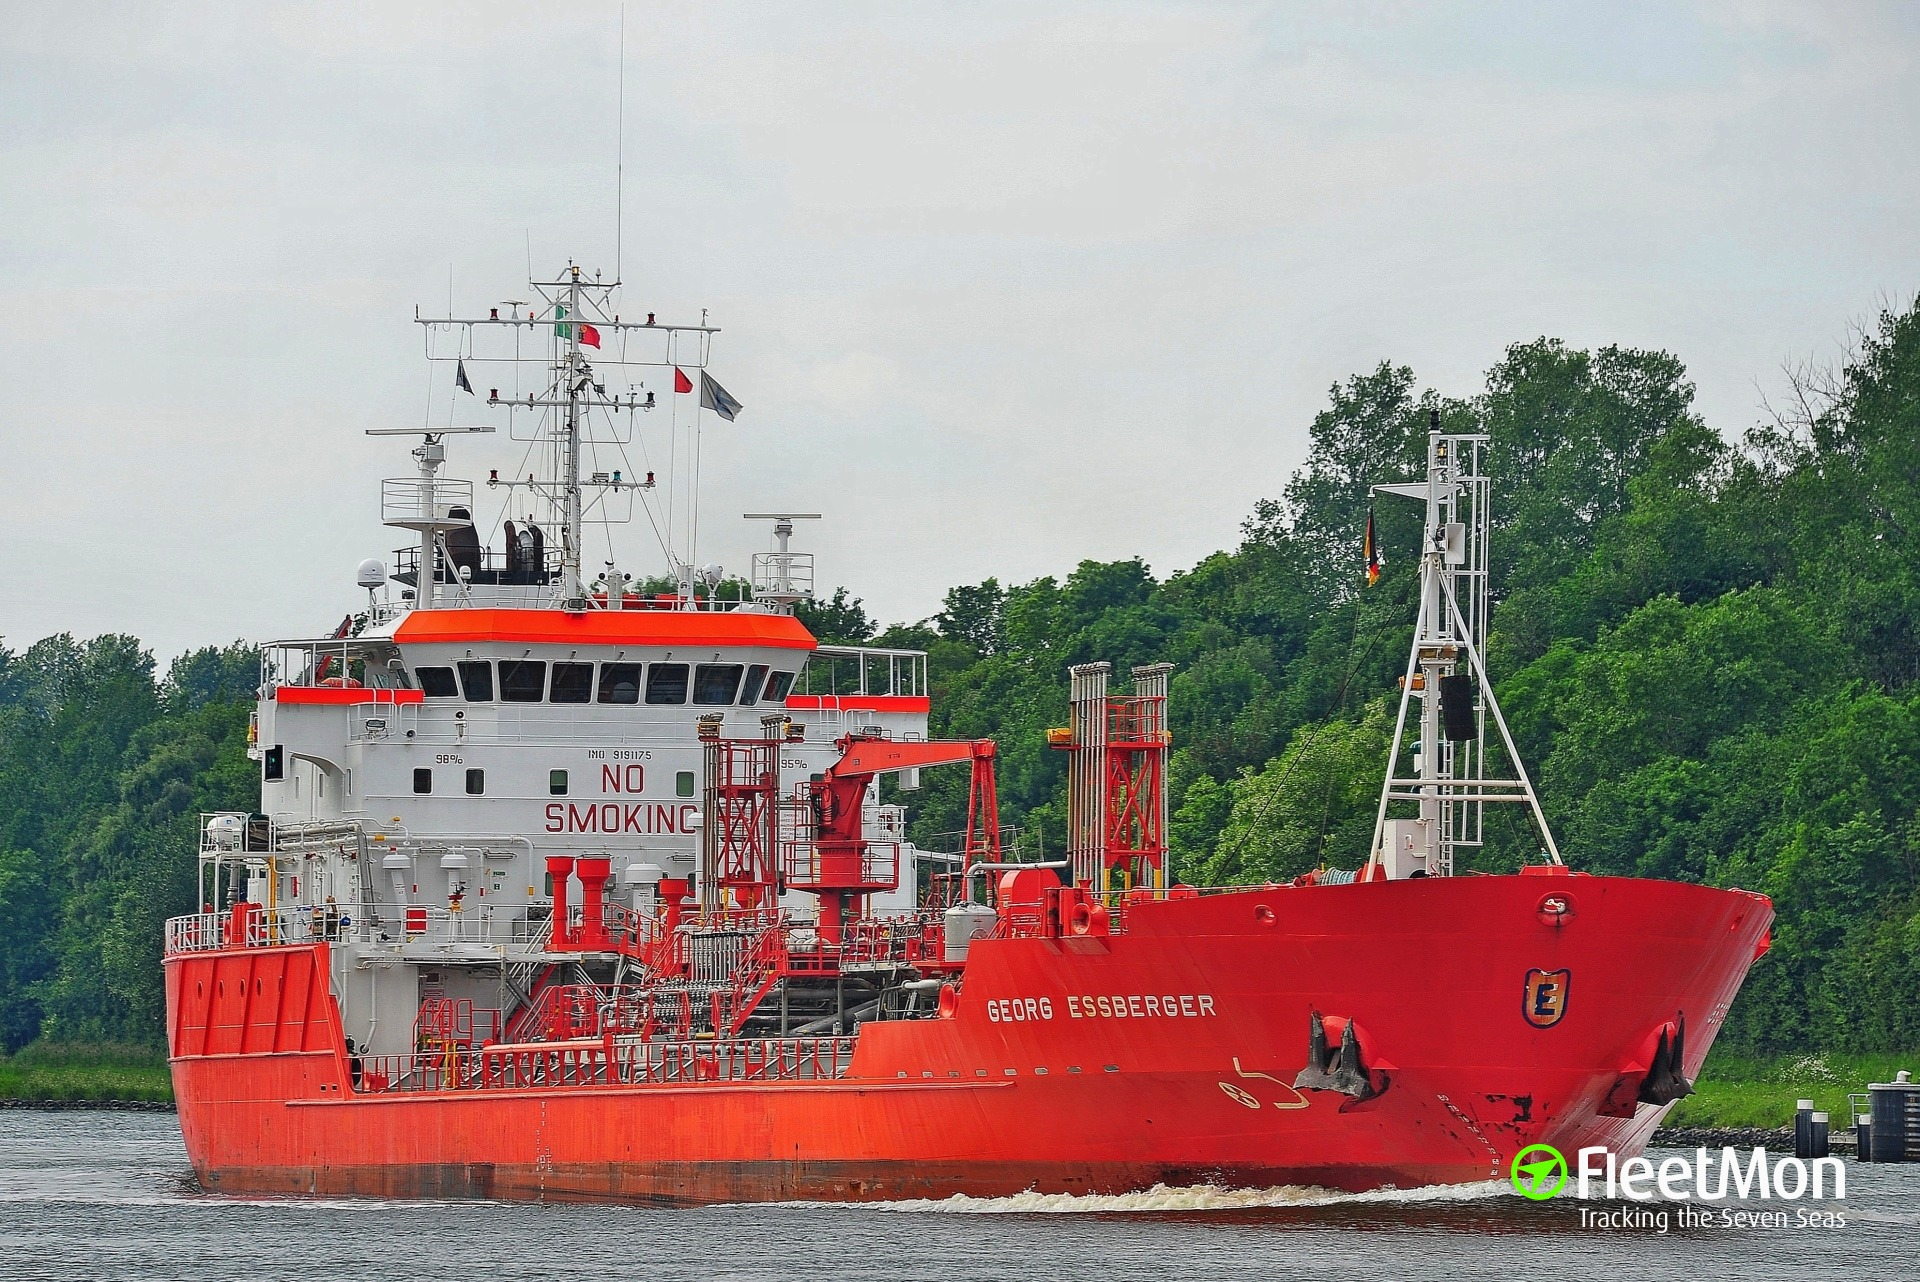 Product tanker GEORG ESSBERGER damaged in allision